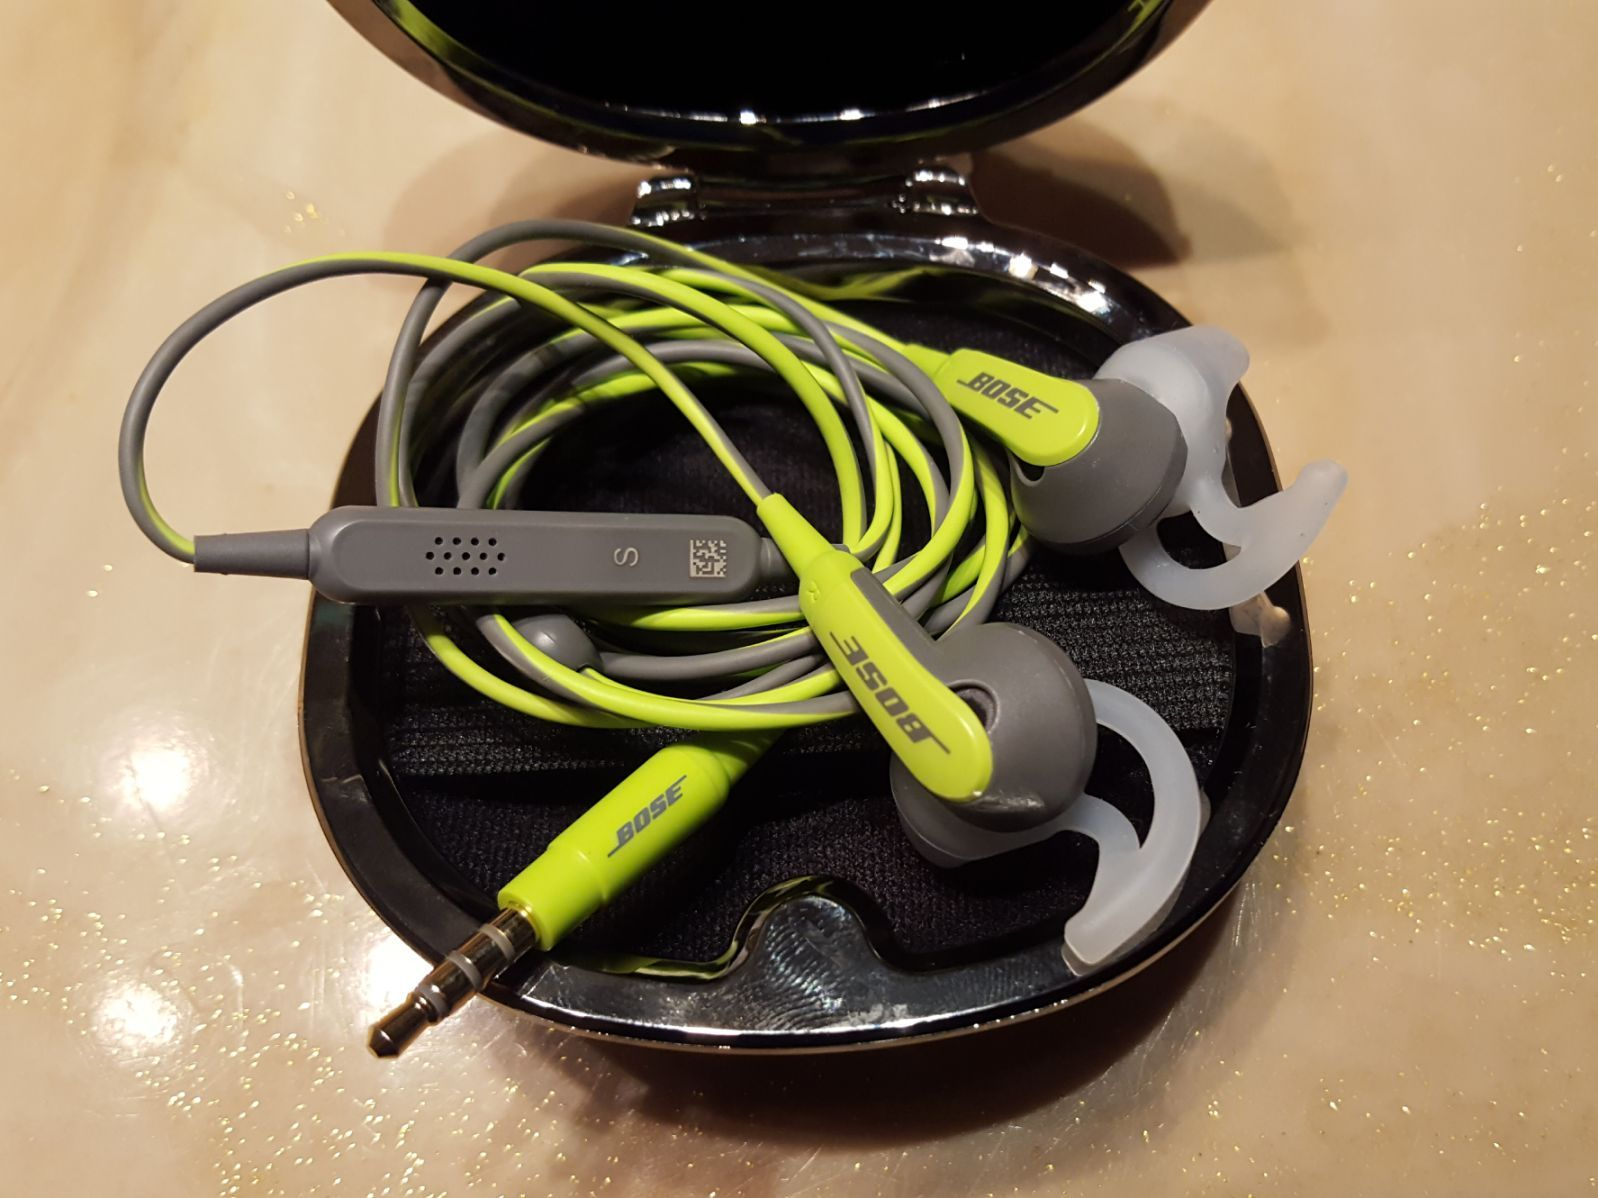 Bose Soundsport In Ear Headphones Color Energy Green Comes With Case Tested And Works Thank You In Ear Headphones Bose Green